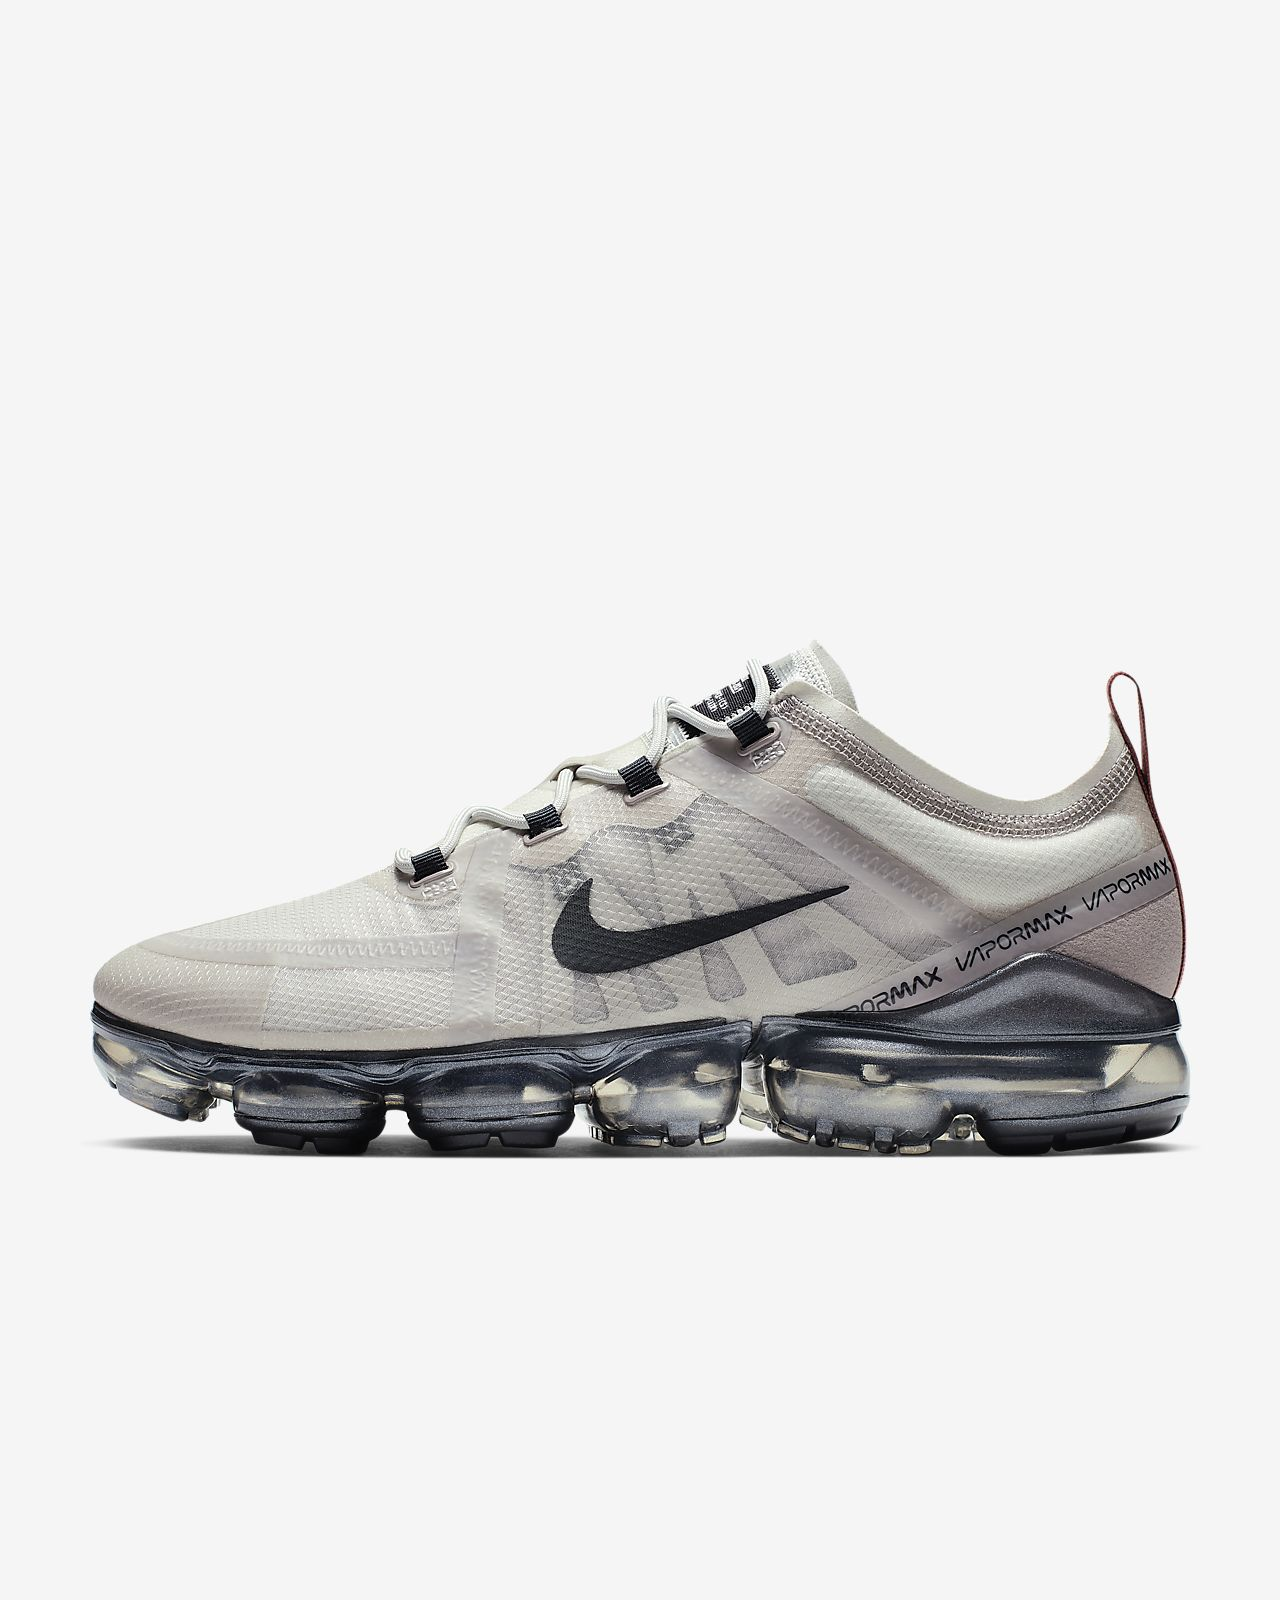 hot sale online 1842c 03731 Shoe. Nike Air VaporMax 2019